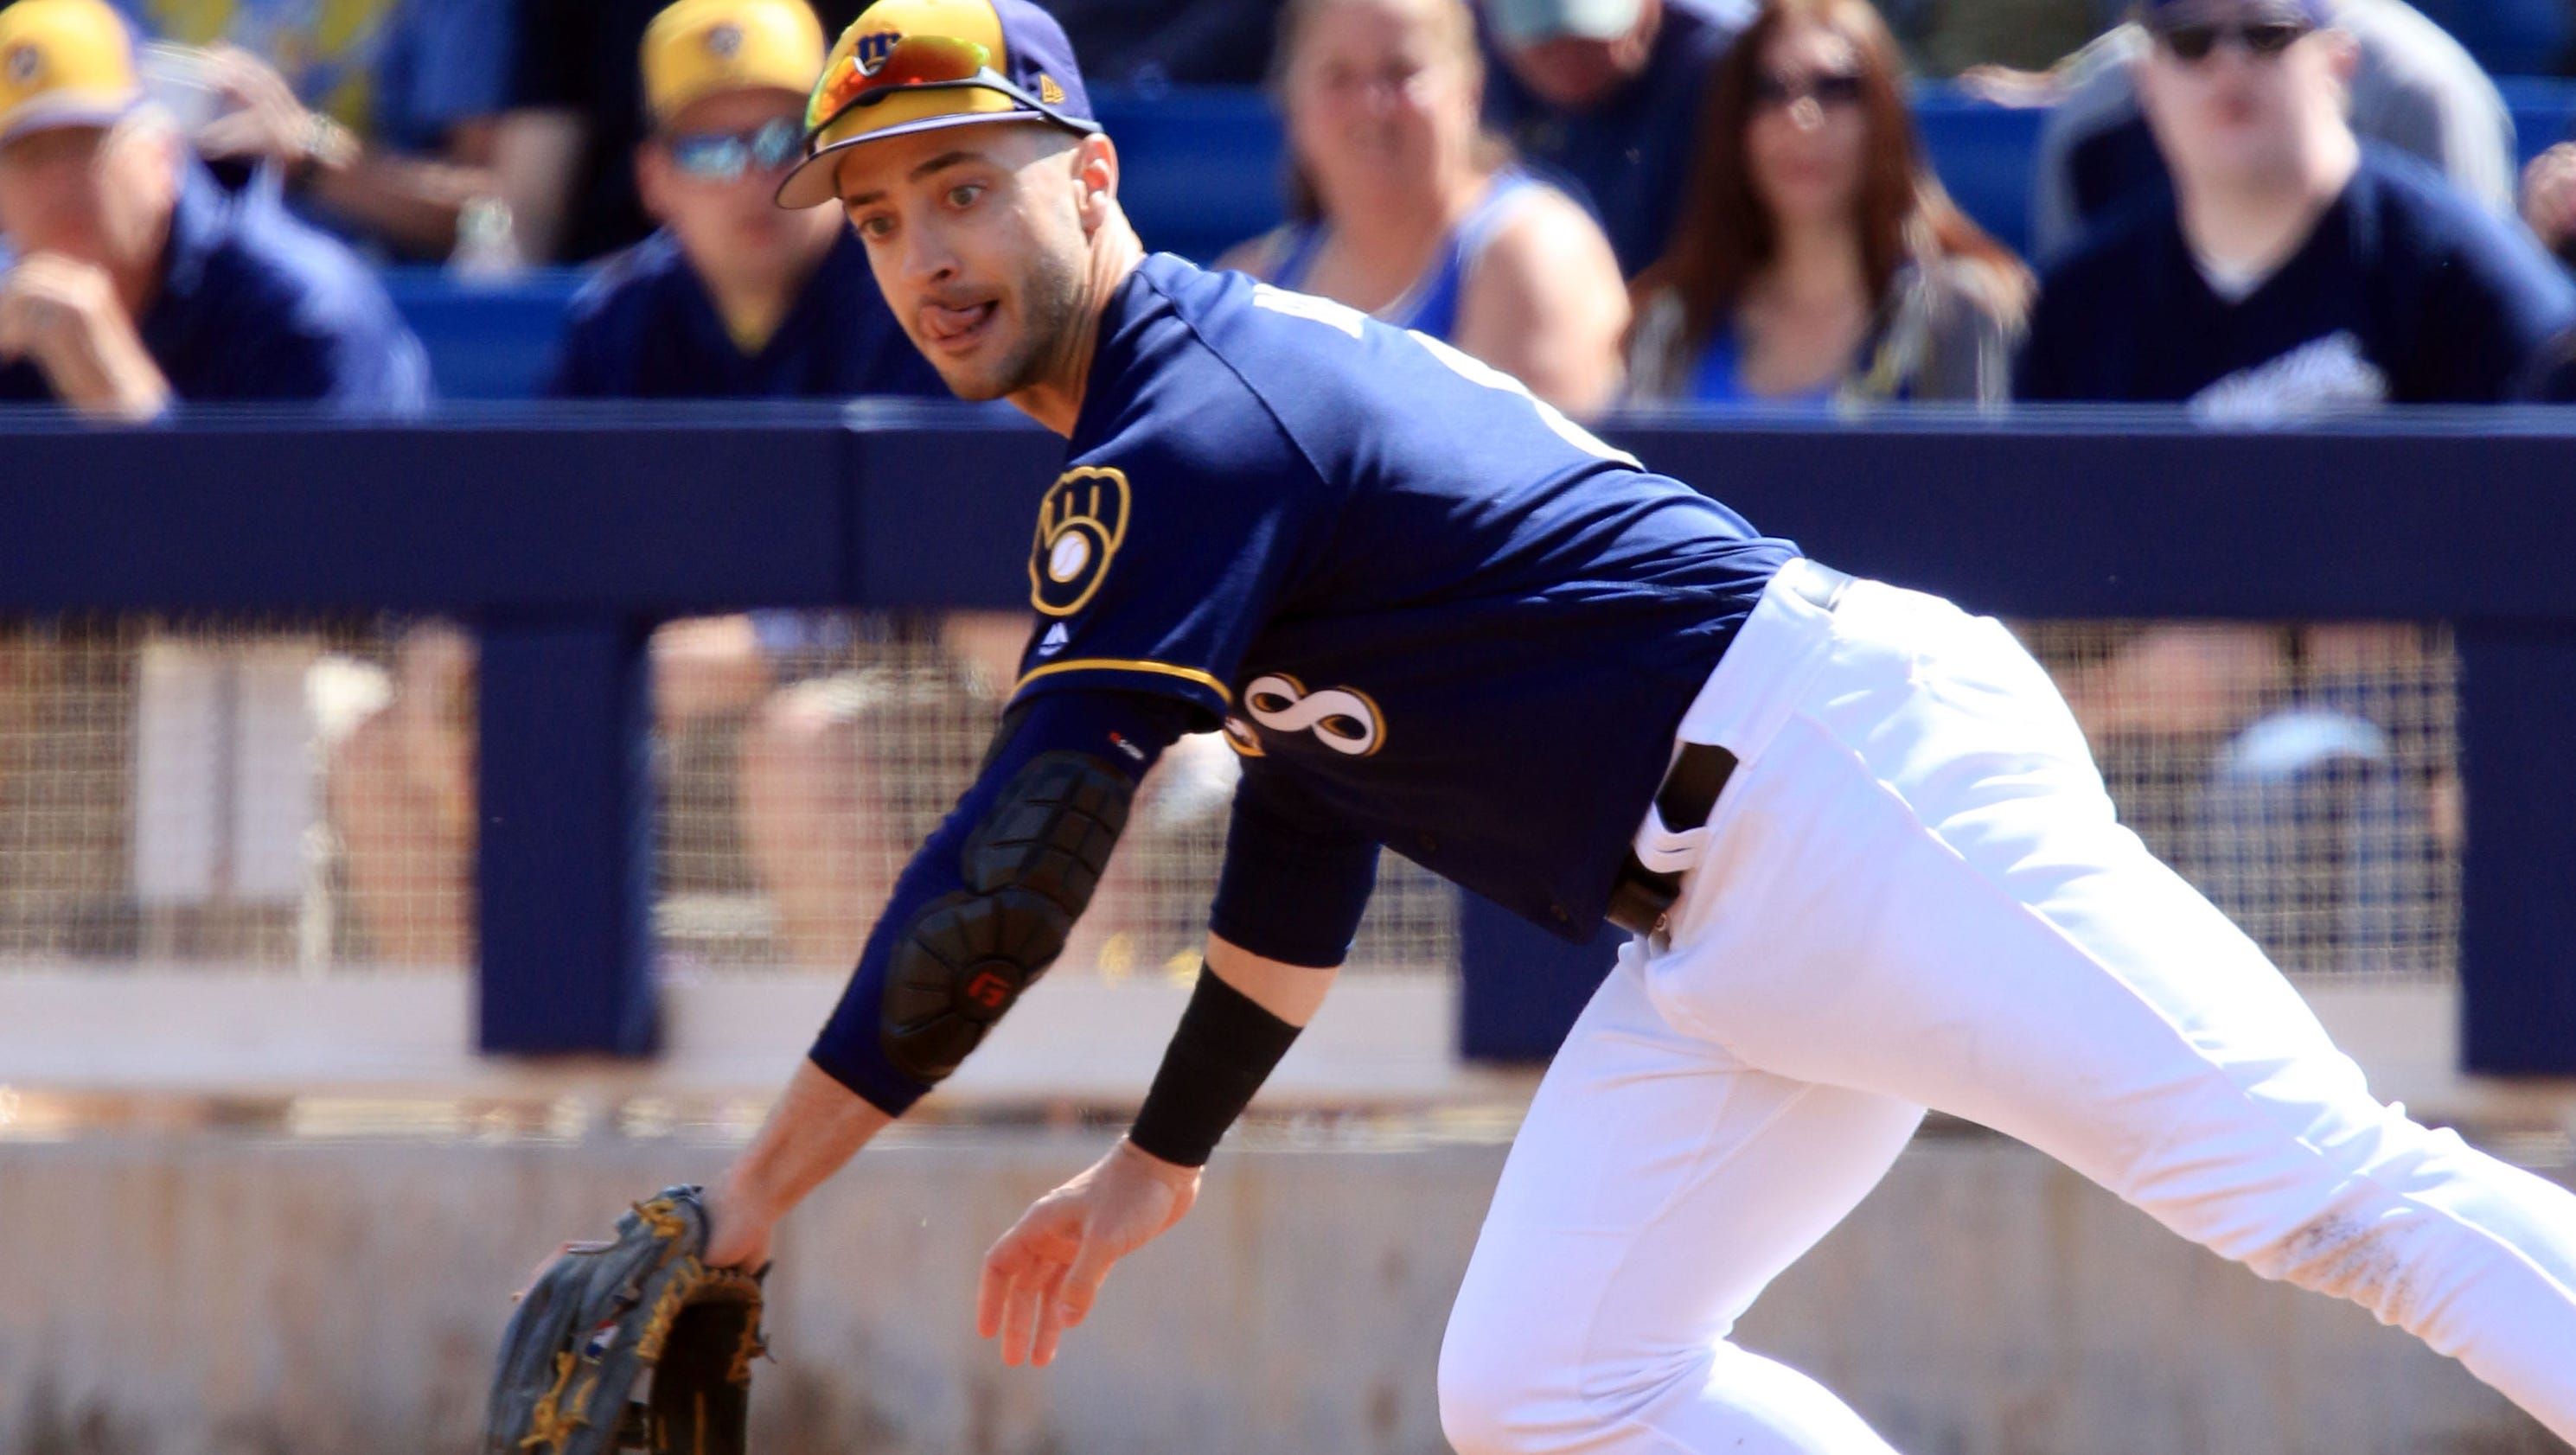 636554536784899856-mjs-brewers-spring-training.9